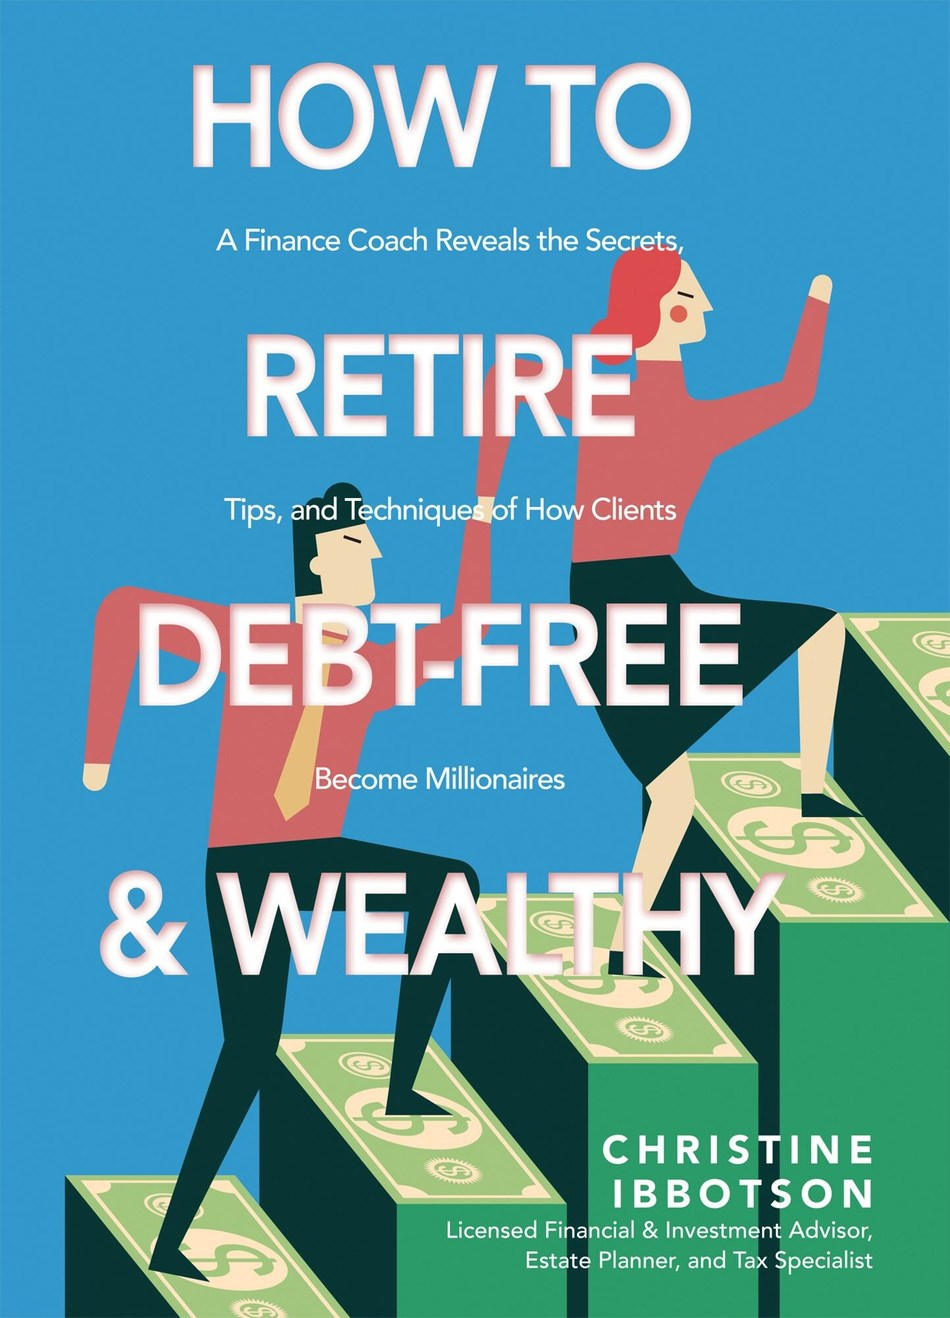 How to Retire Debt-Free and Wealthy Cover (CNW Group/Nimbus Publishing Limited)